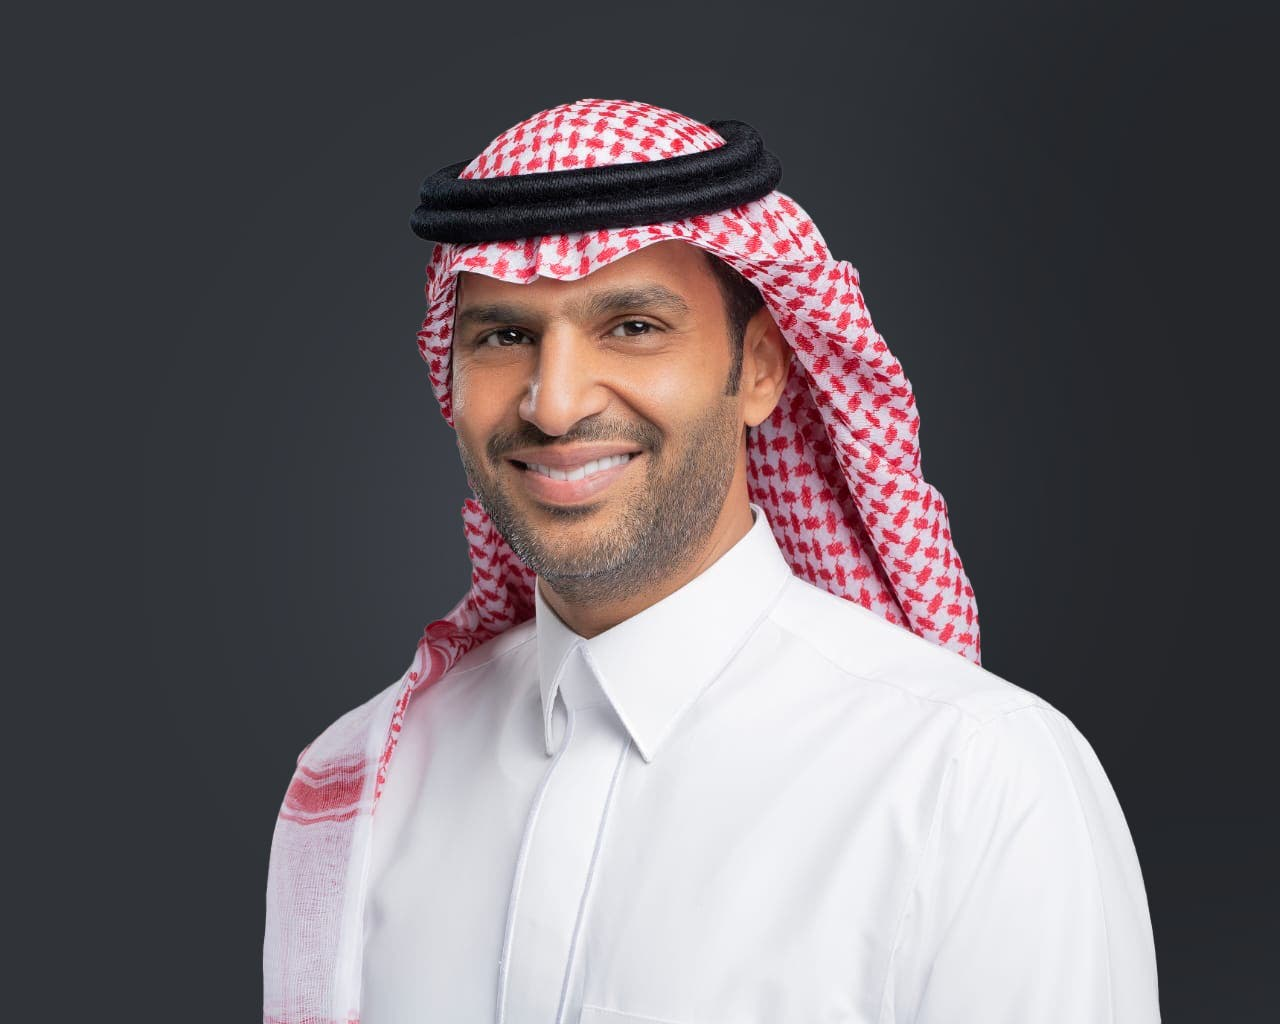 Mofeed Alnowaisir, Chief Digital Officer at MBC GROUP. (MBC)